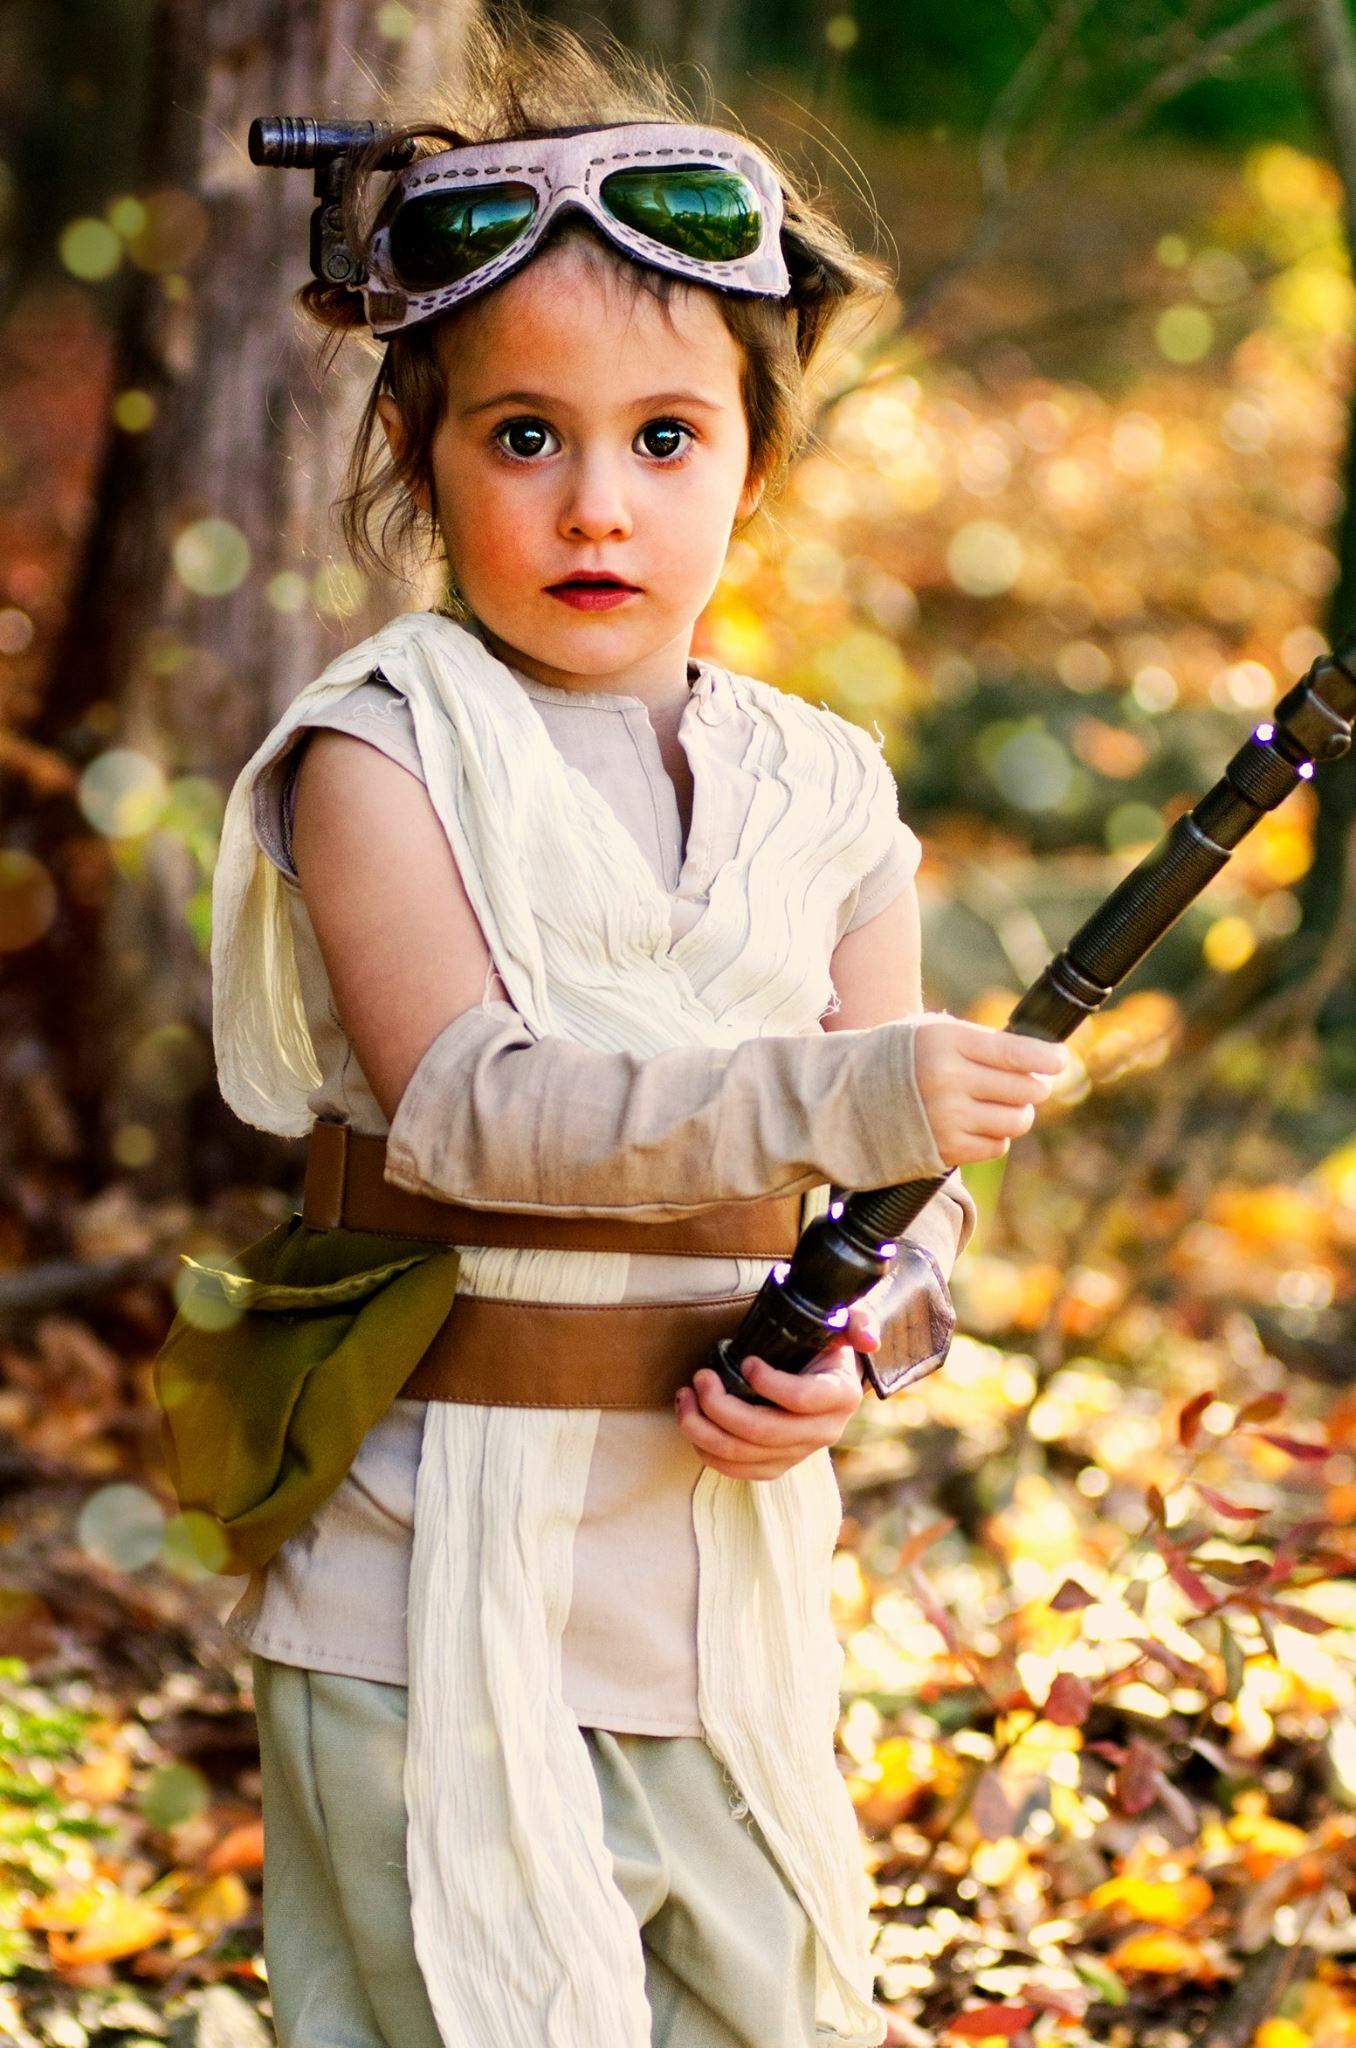 My 3 5 Year Old Daughter Asked To Be Rey In The New Star Wars